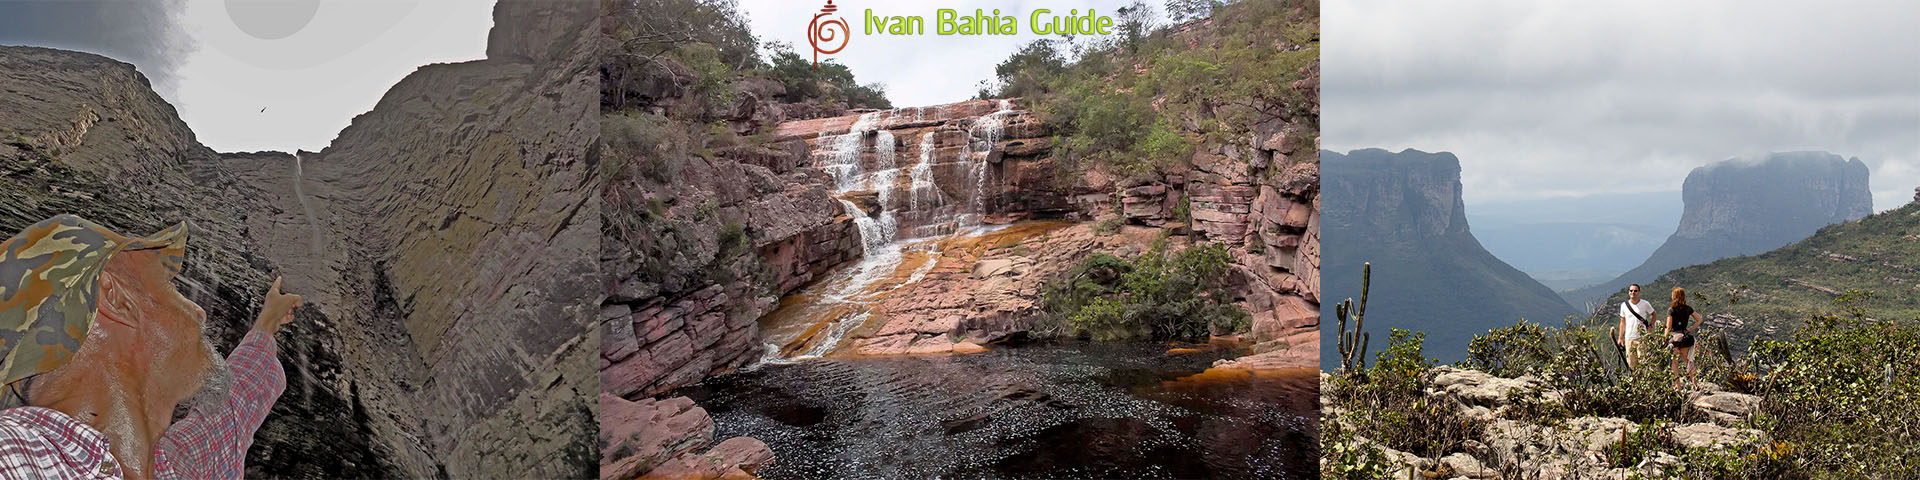 Ivan Bahia tour-guide / hiking in Chapada Diamantina National Park (aka 'the Brazilian Grand Canyon') mountain views,